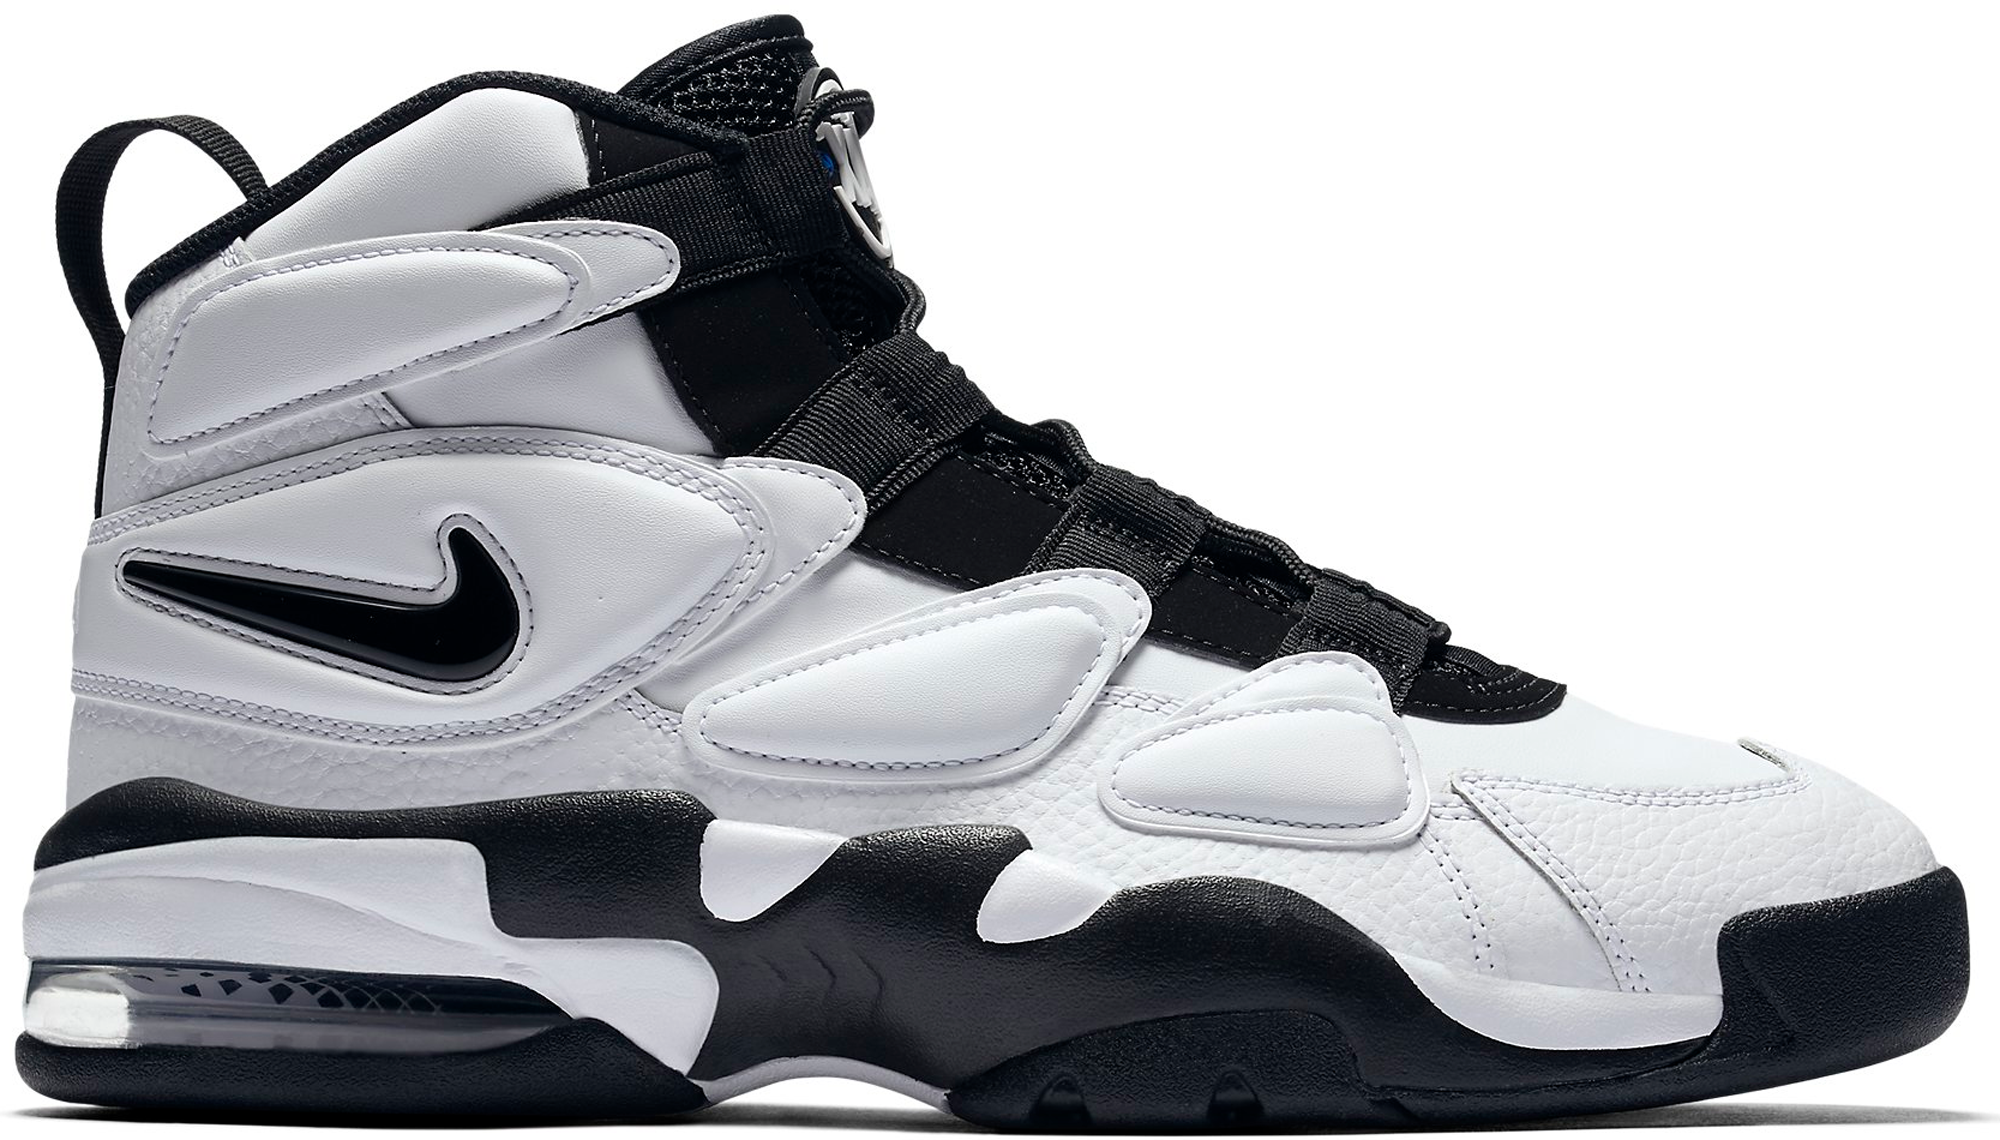 reduced nike air max 2 uptempo 1c35c a4964  wholesale air max 2 uptempo 94  og white black 2017 8a5f6 d858d ded71482a